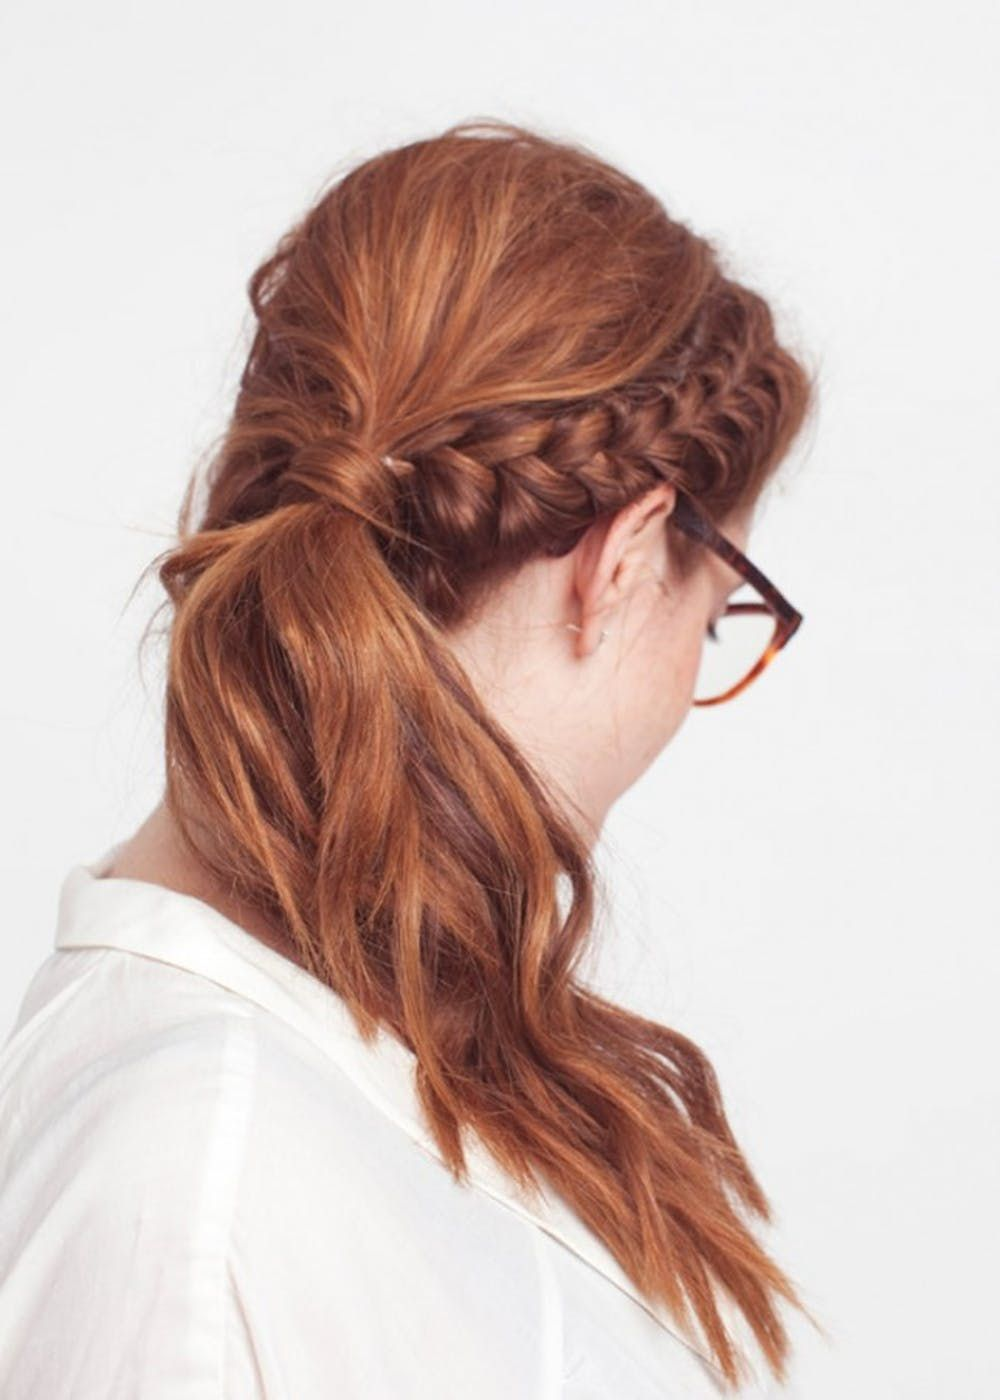 quick and easy hairstyle for busy women hairstyle ideas